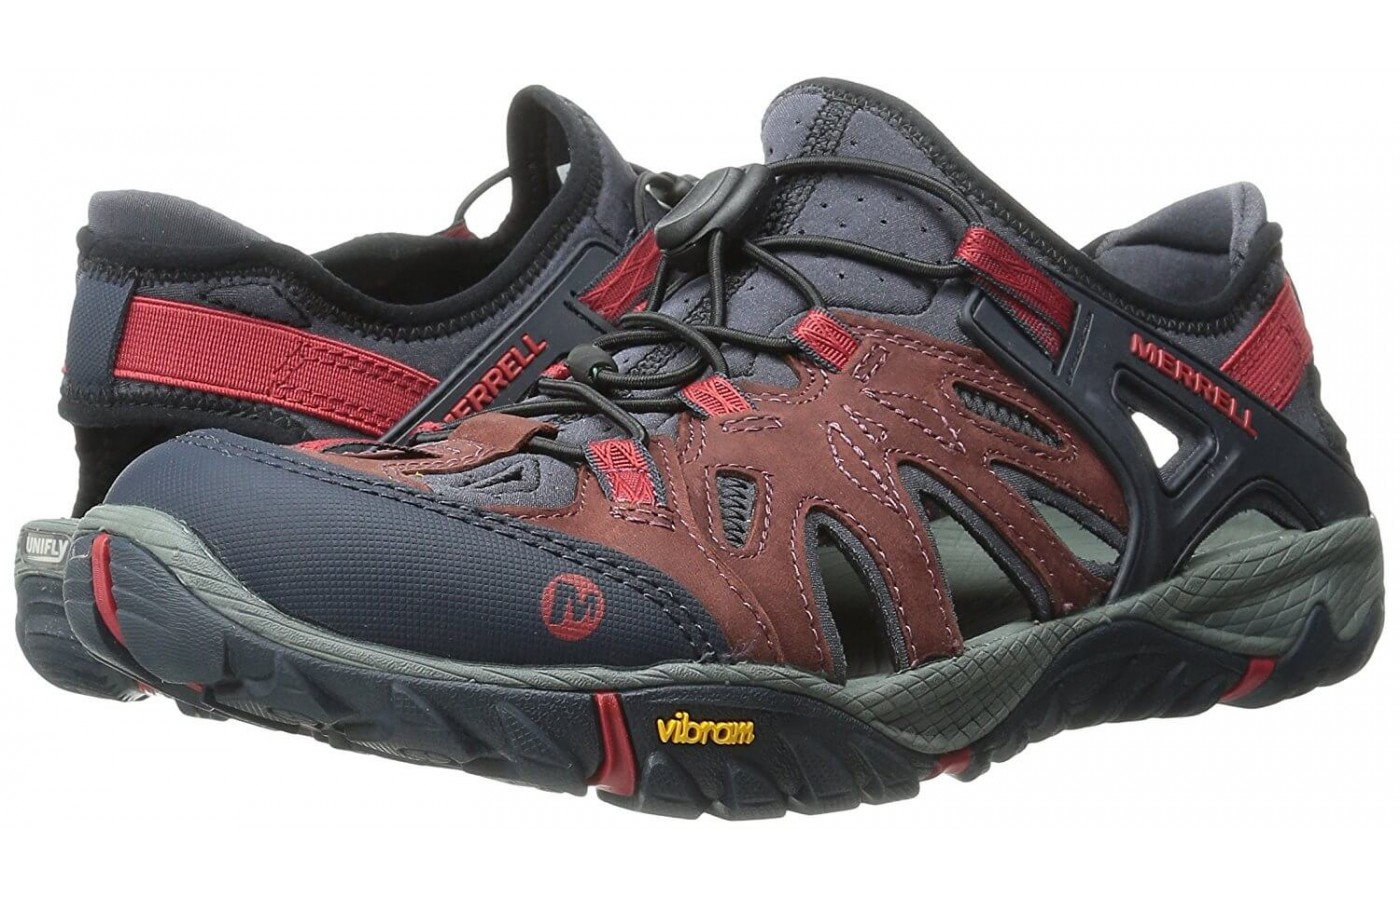 The Merrell All Out Blaze Sieve includes a variety of cut outs that act as drainage holes to help shed water.